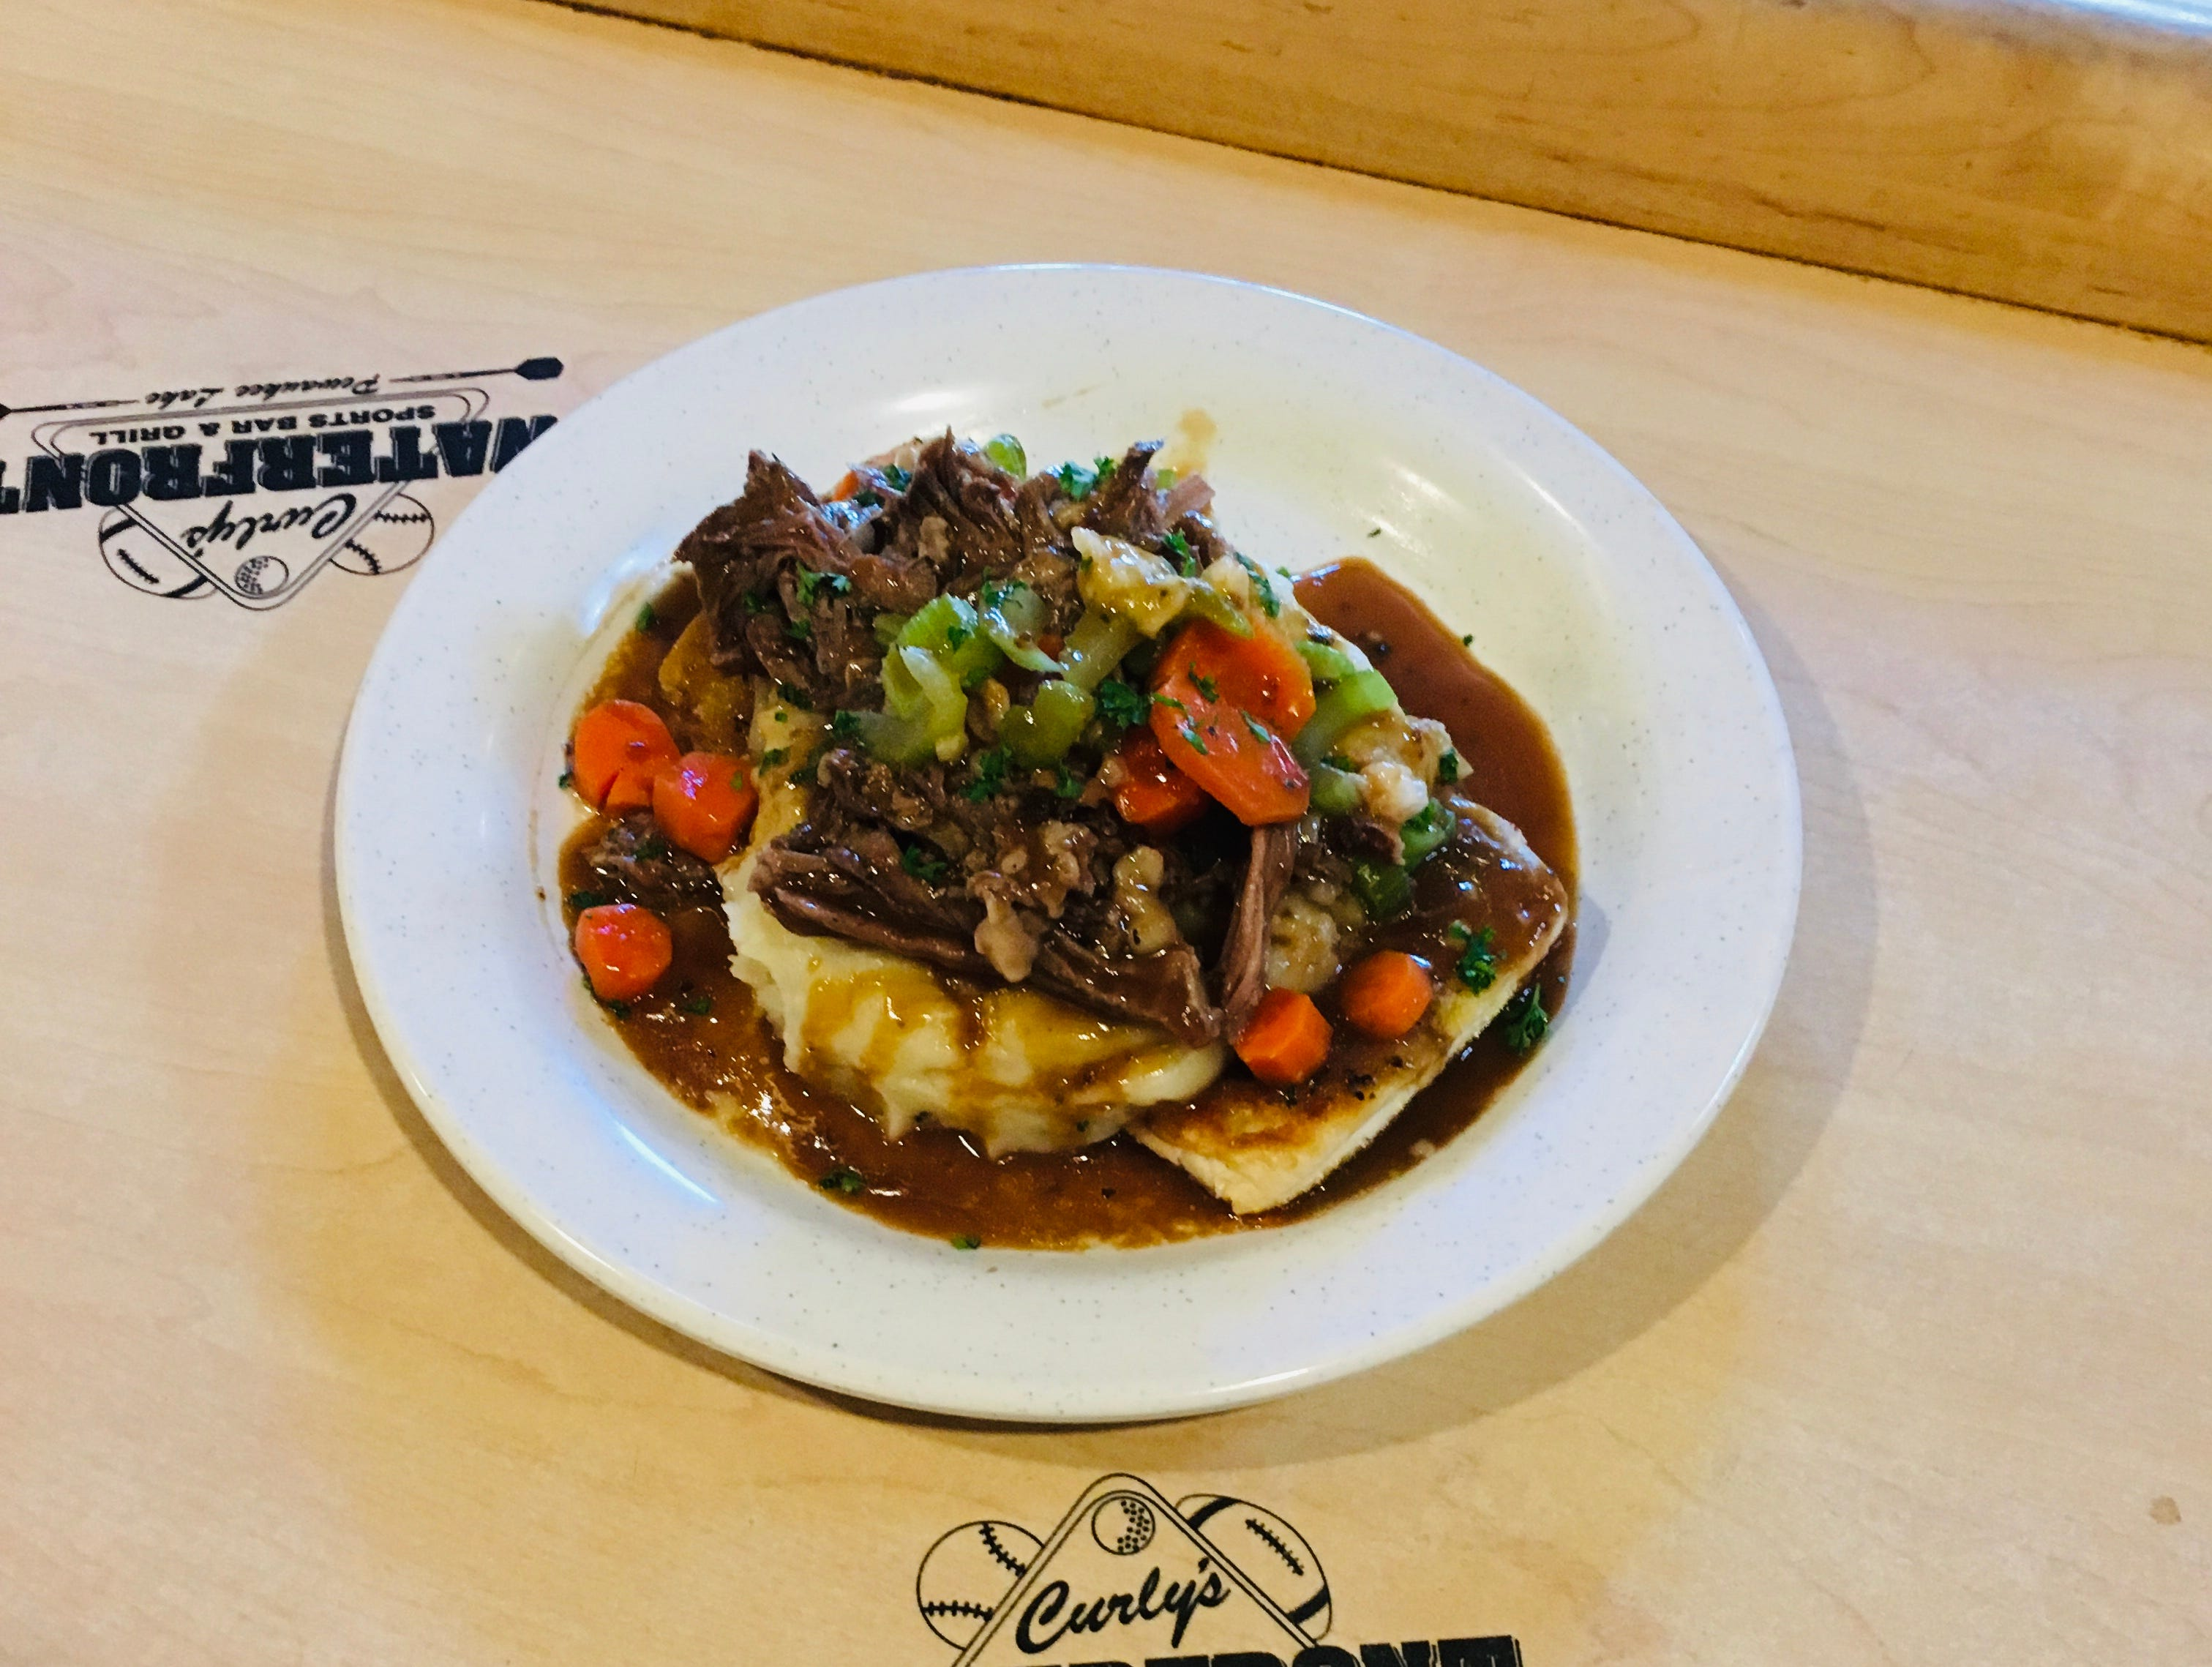 Curly's serves up plenty of hearty entrees including the pot roast.